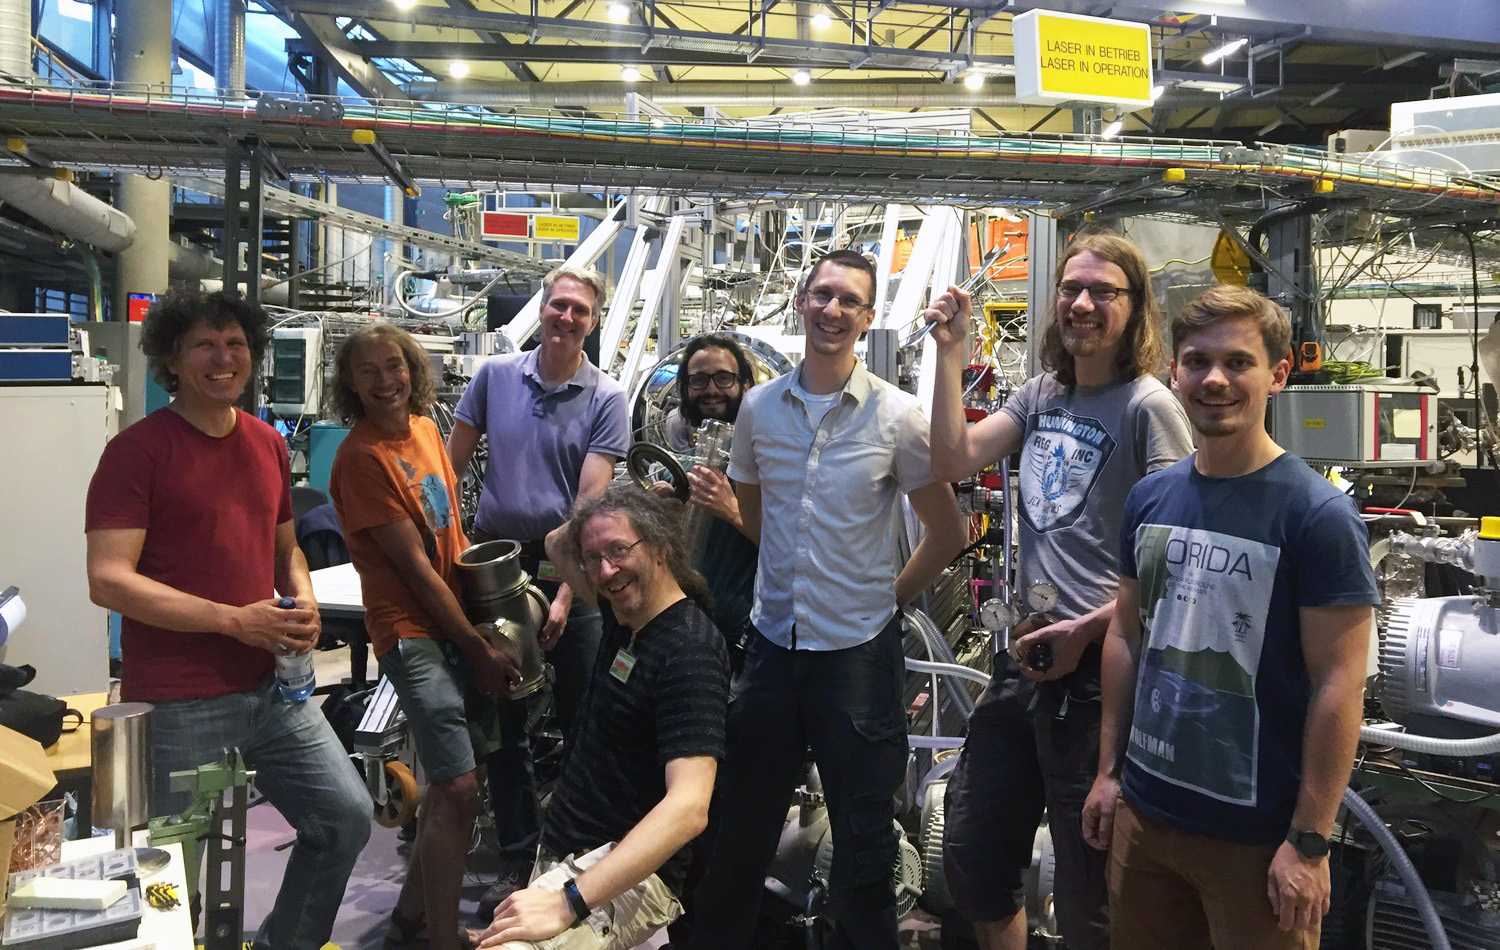 The team at BESSY II synchrotron in Berlin